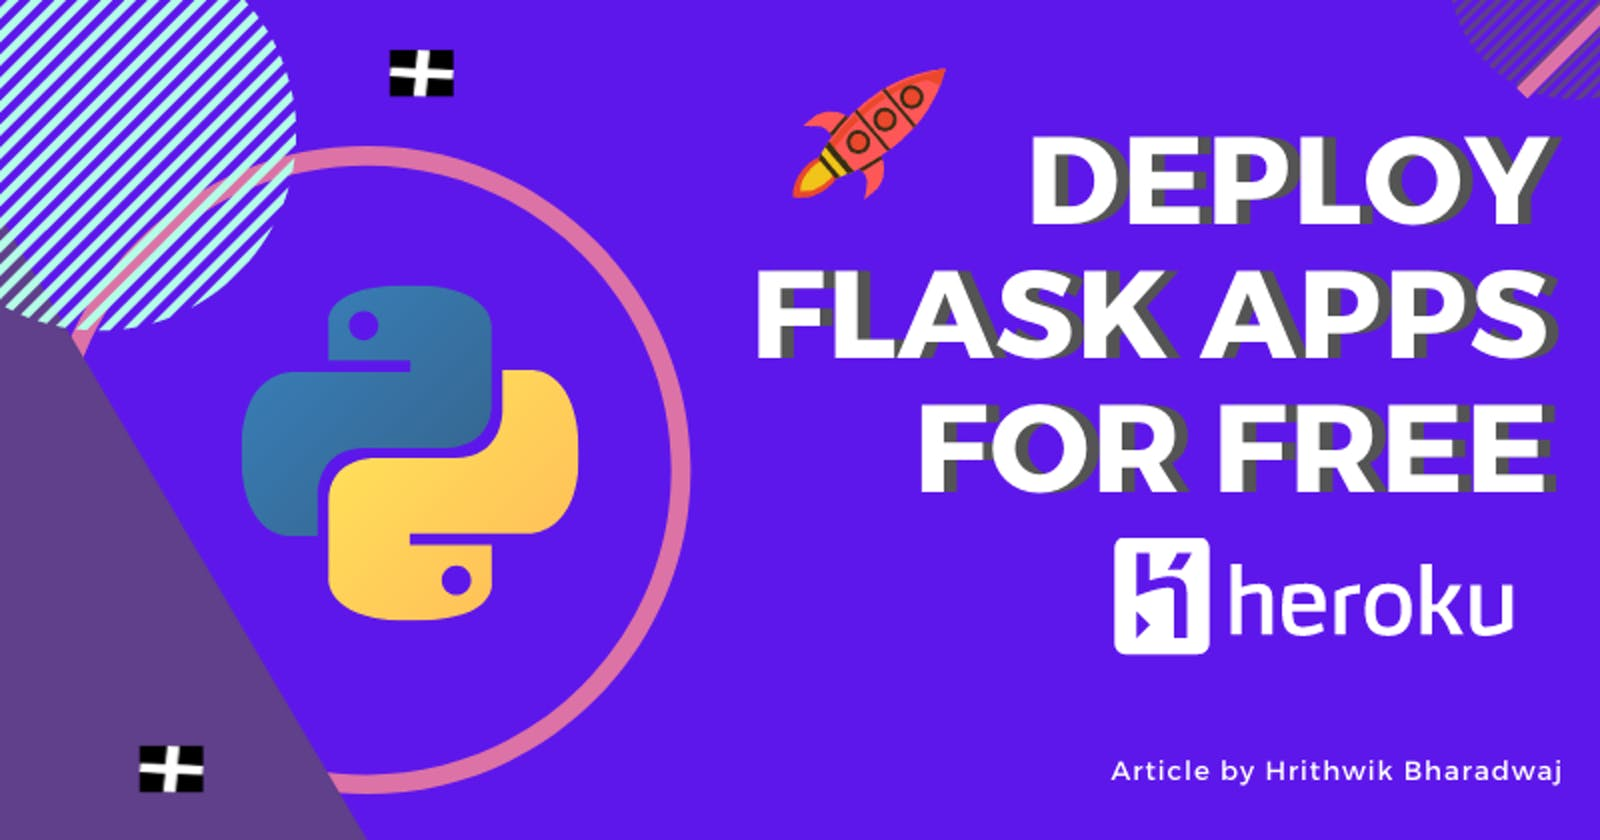 How to Deploy Flask apps for Free with Heroku